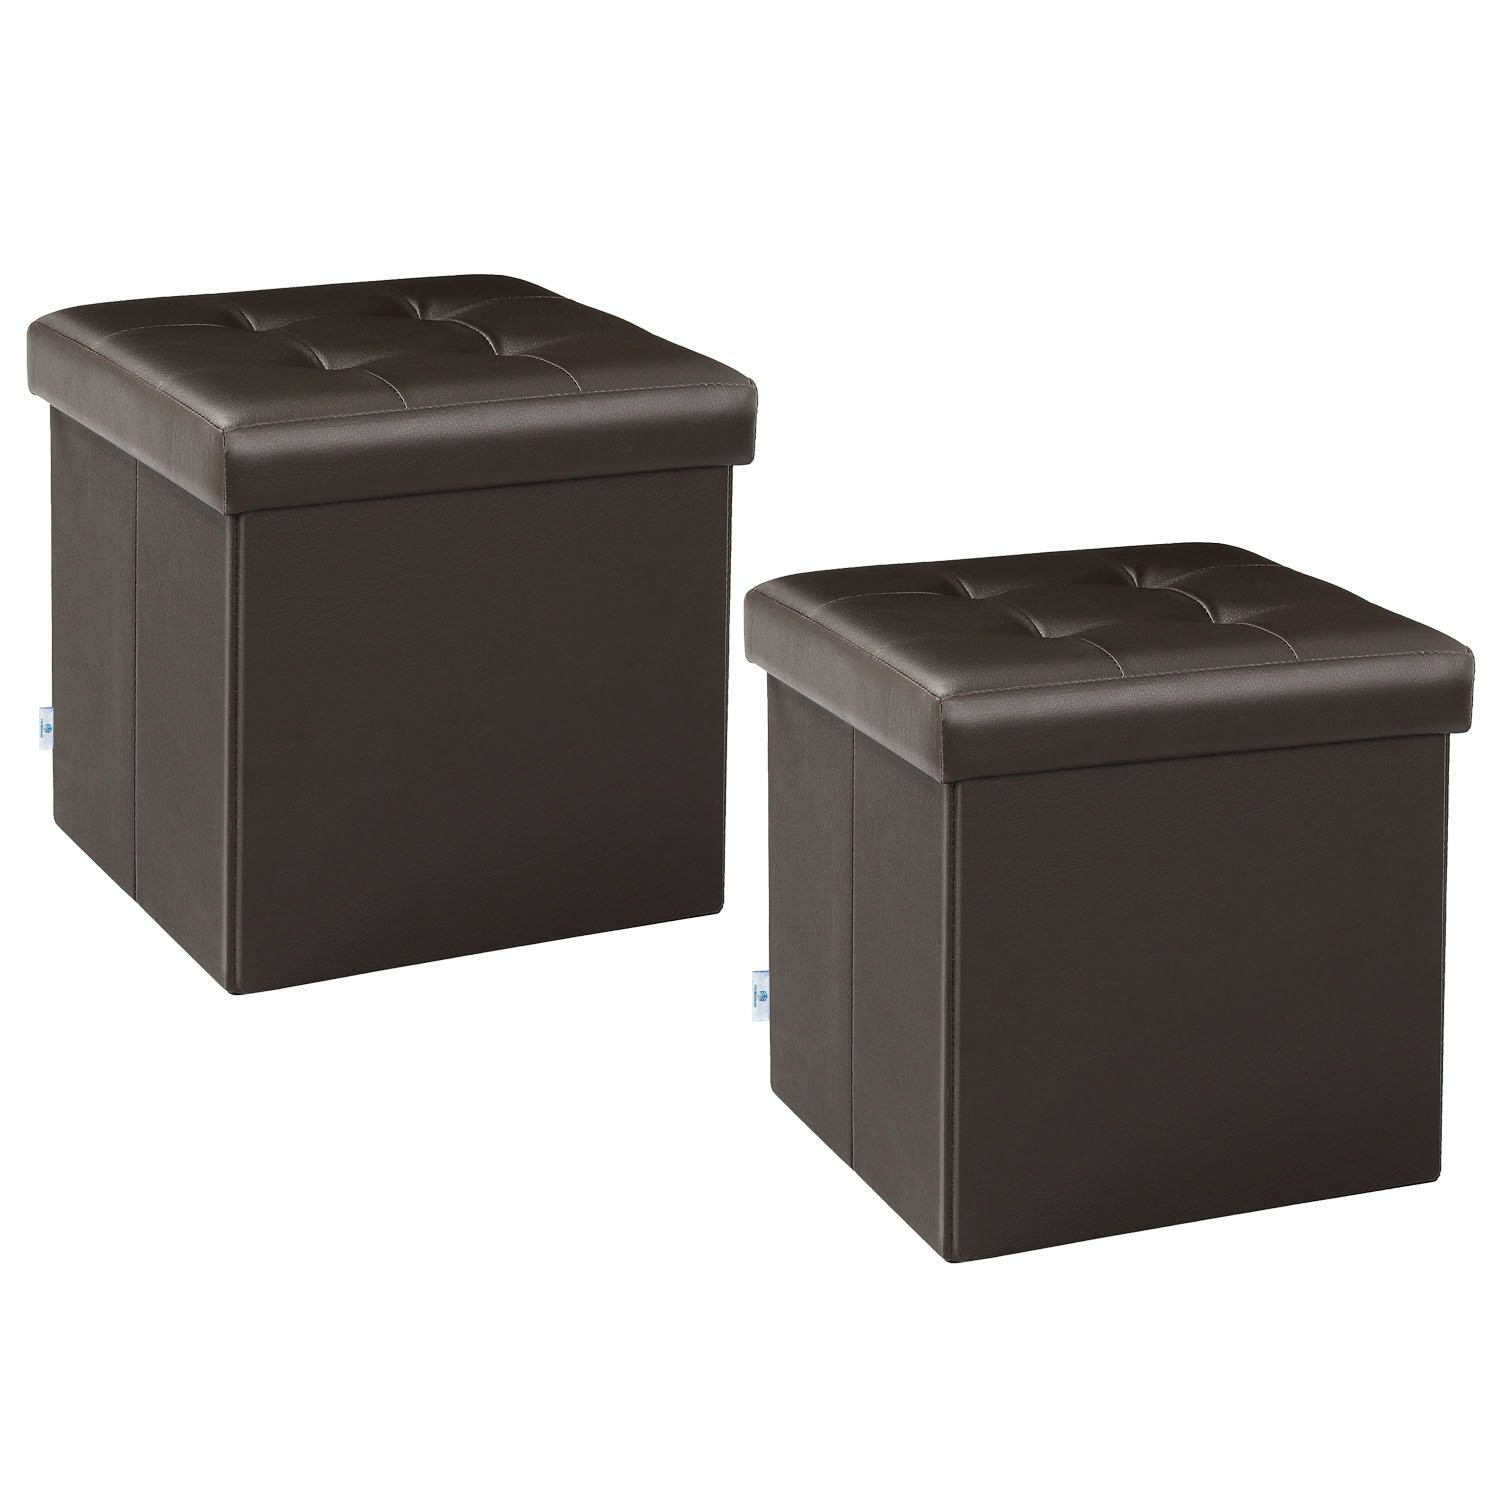 B FSOBEIIALEO Storage Ottoman Small Cube Footrest Stool Seat Faux Leather Toy Chest Black 12.6